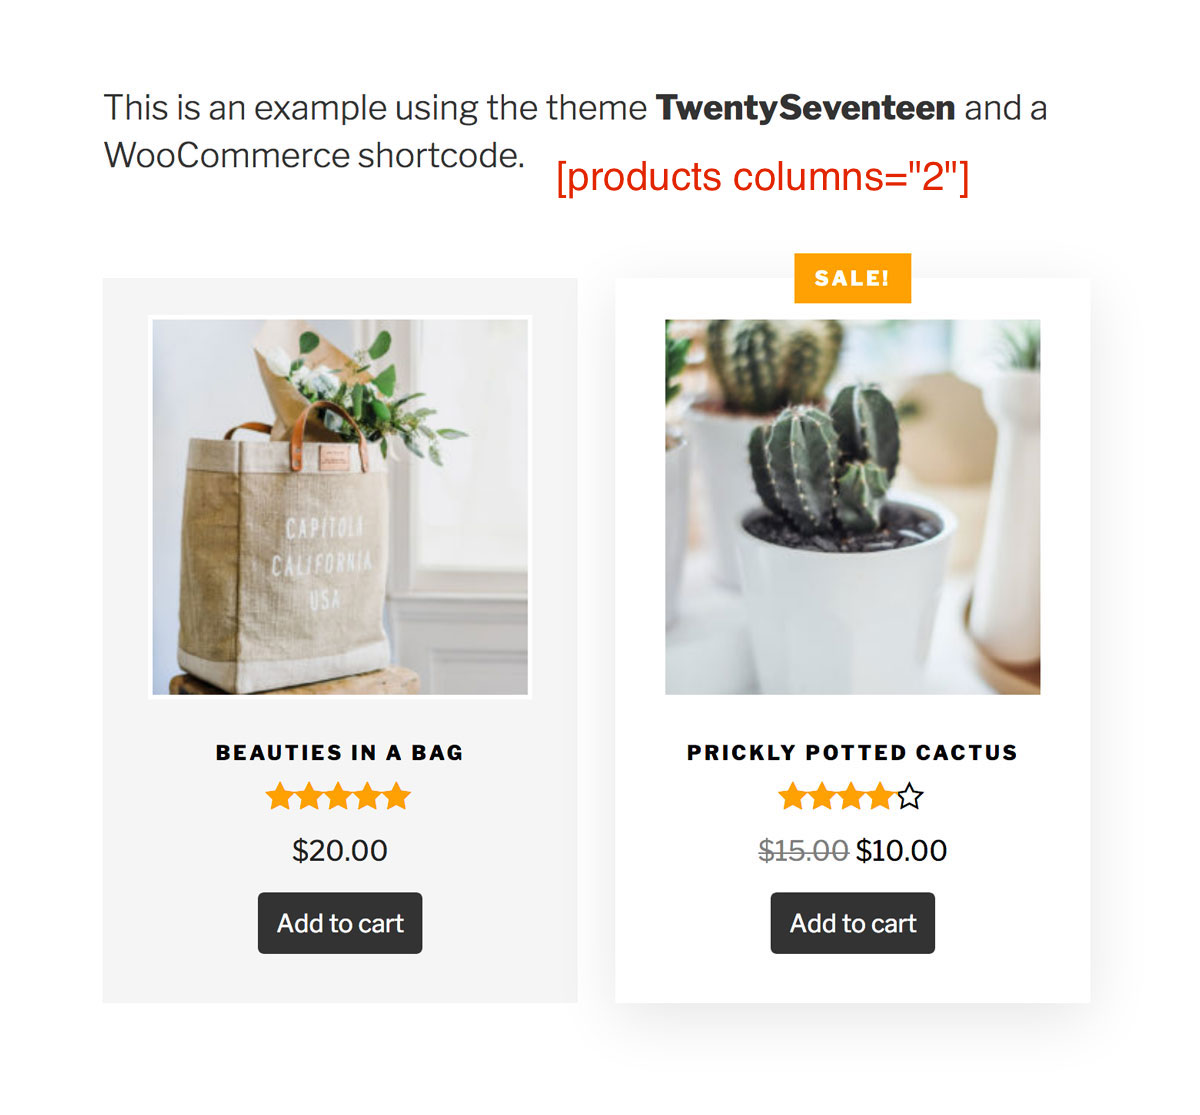 WooCommerce Shop Grid Styling for TwentySeventeen